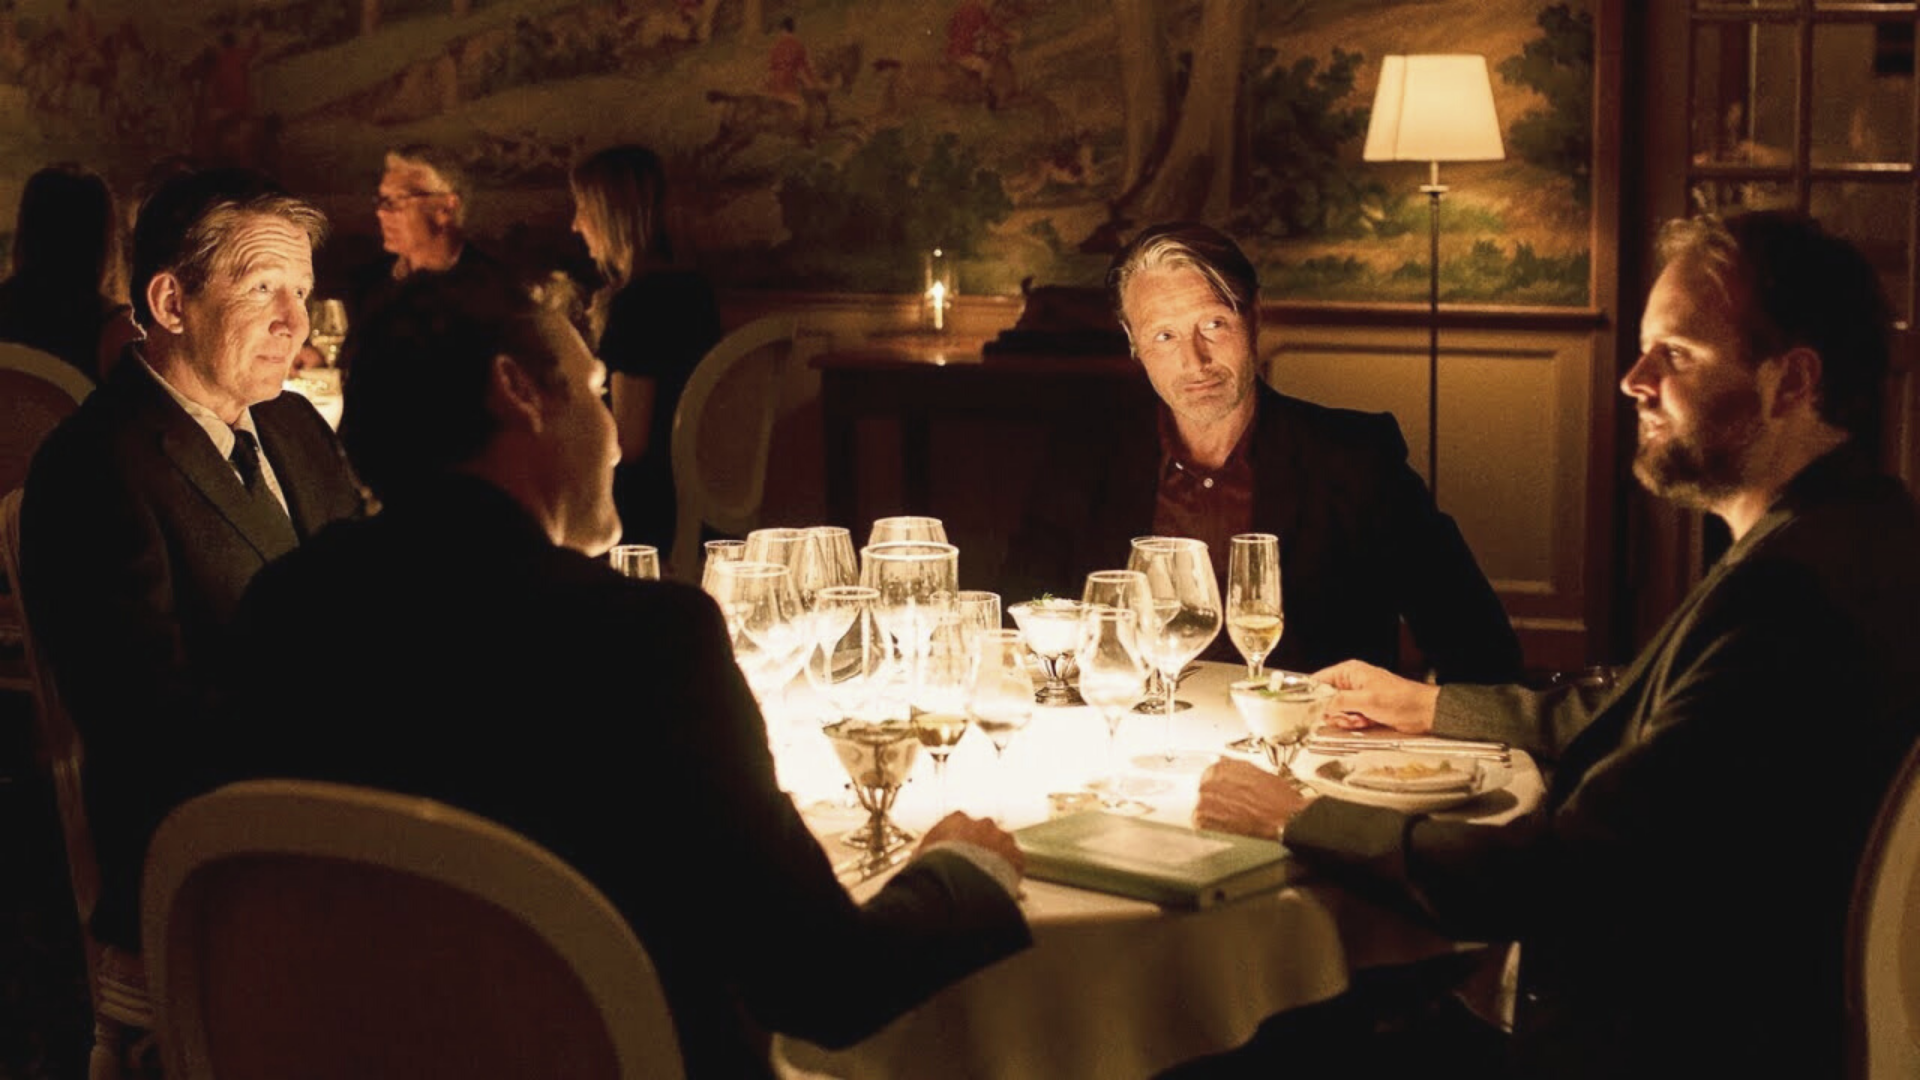 Another Round-the friends at dinner. With Thomas Bo Larsen as Tommy, Mads Mikkelsen as Martin, Magnus Millang as Nicolaj, and Lars Ranthe as Peter